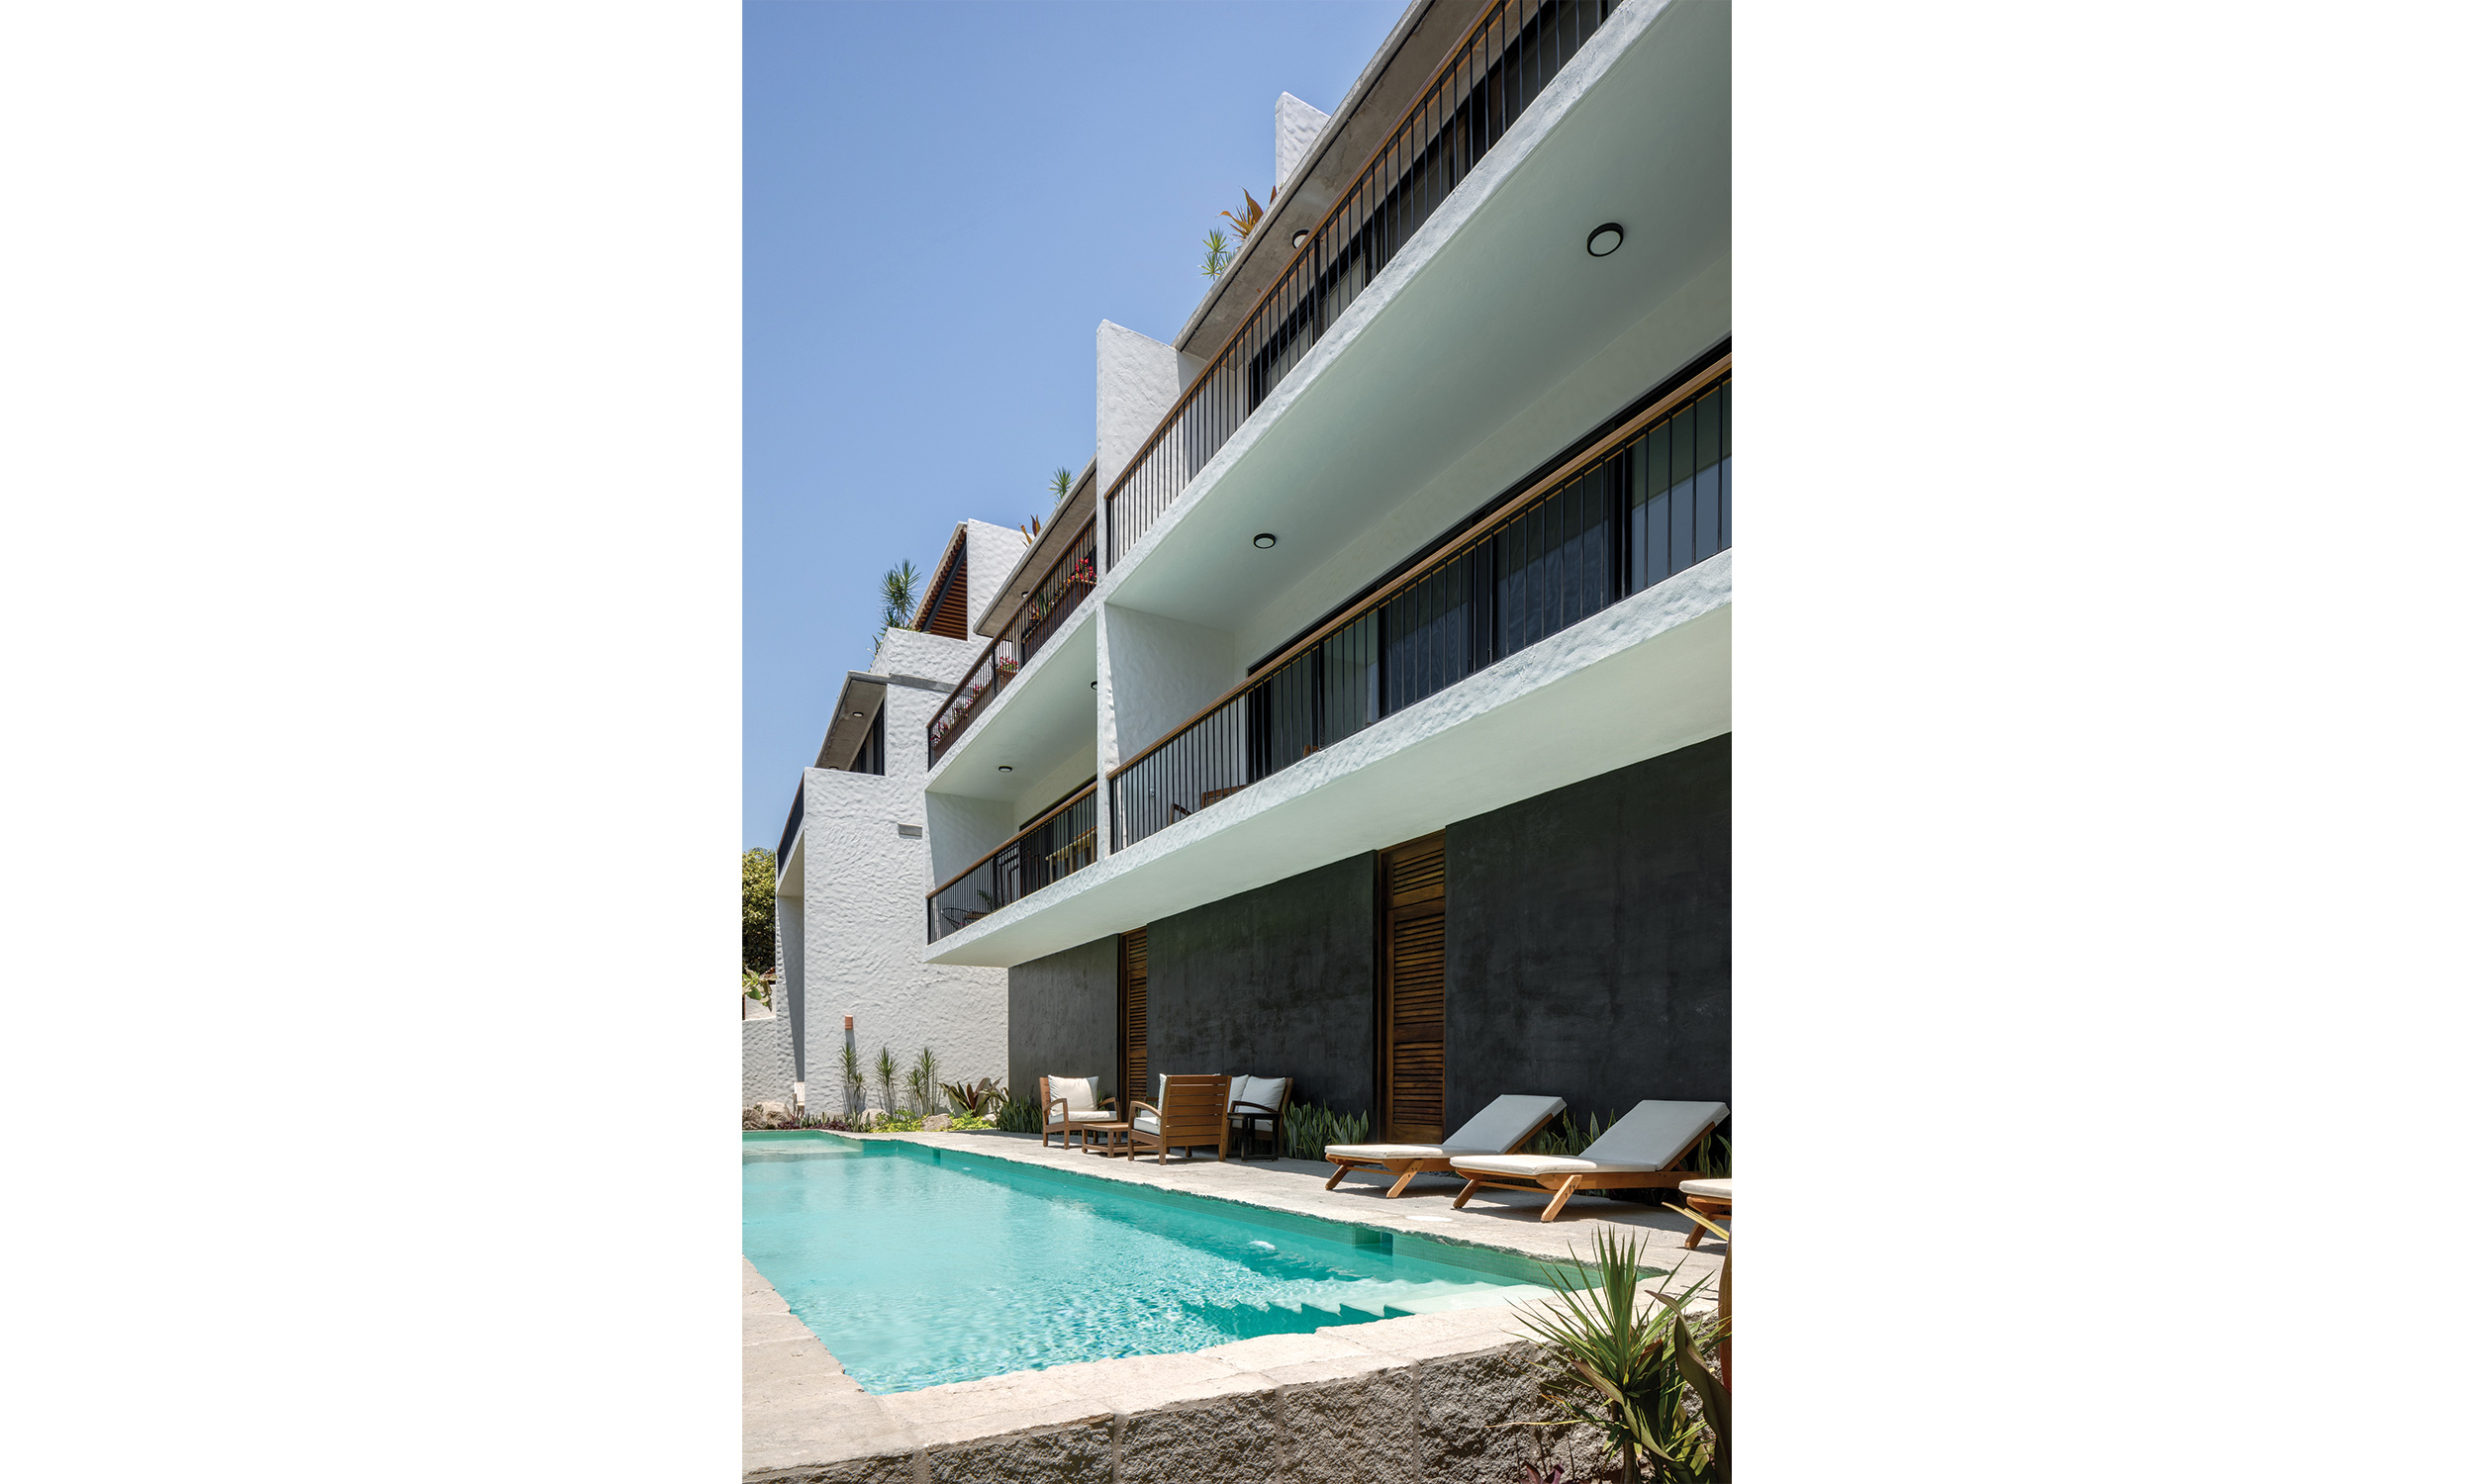 main_office_casa_galería_rafaél_gamo_211_pool